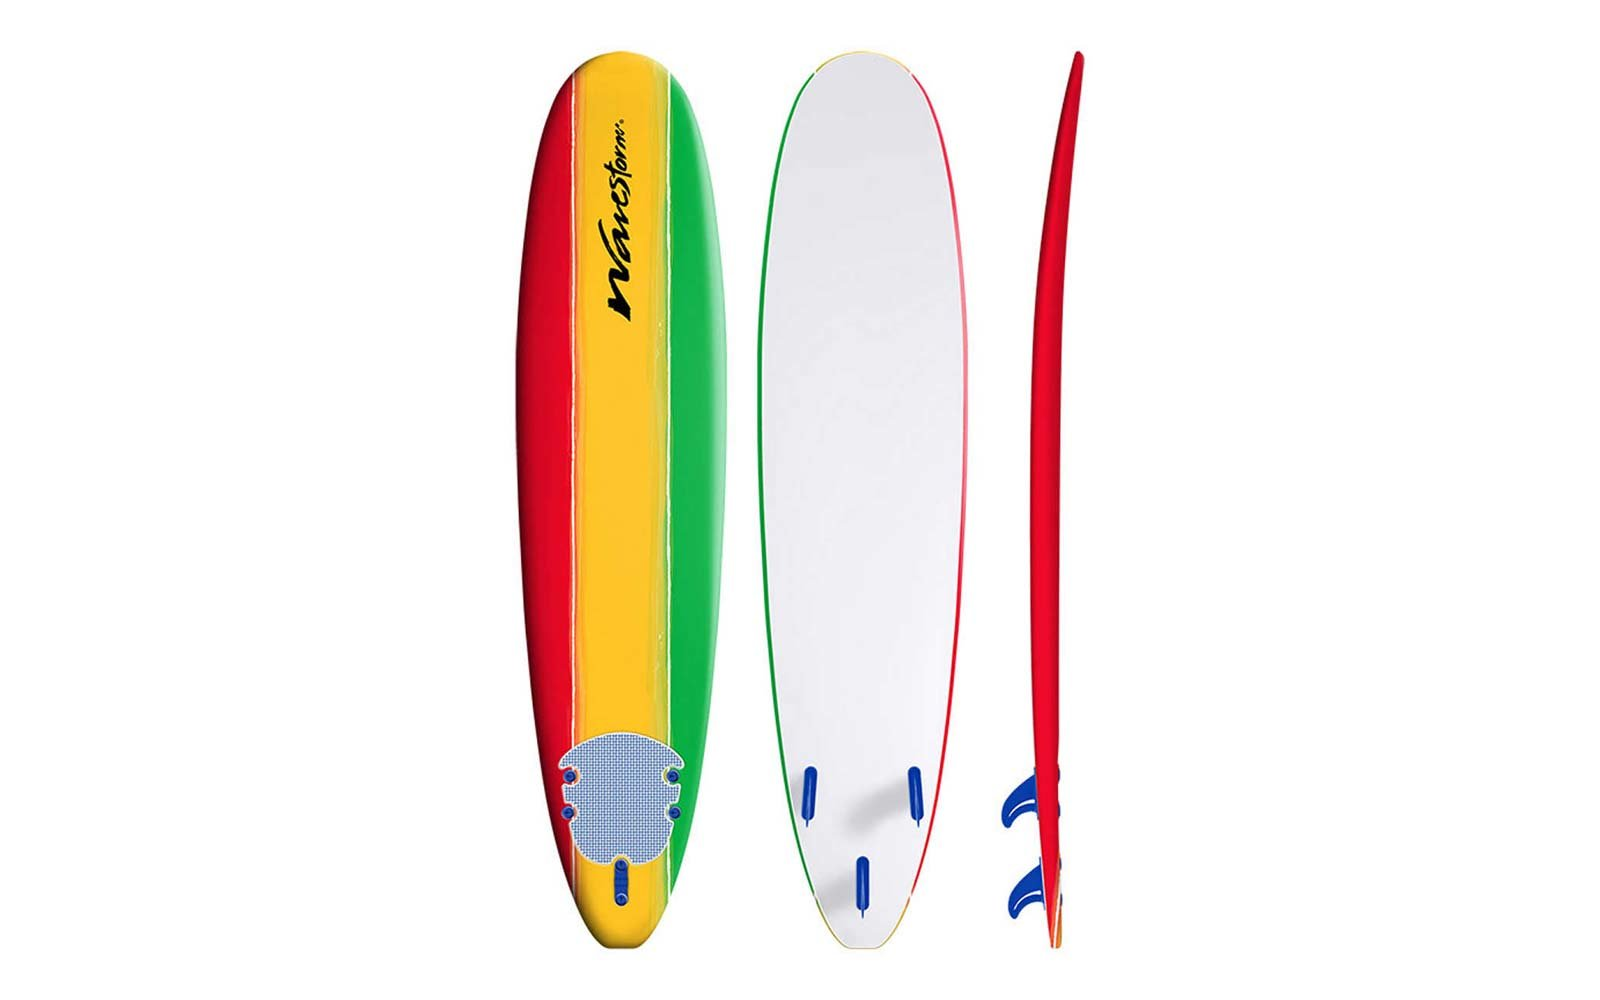 Wavestorm surfboard